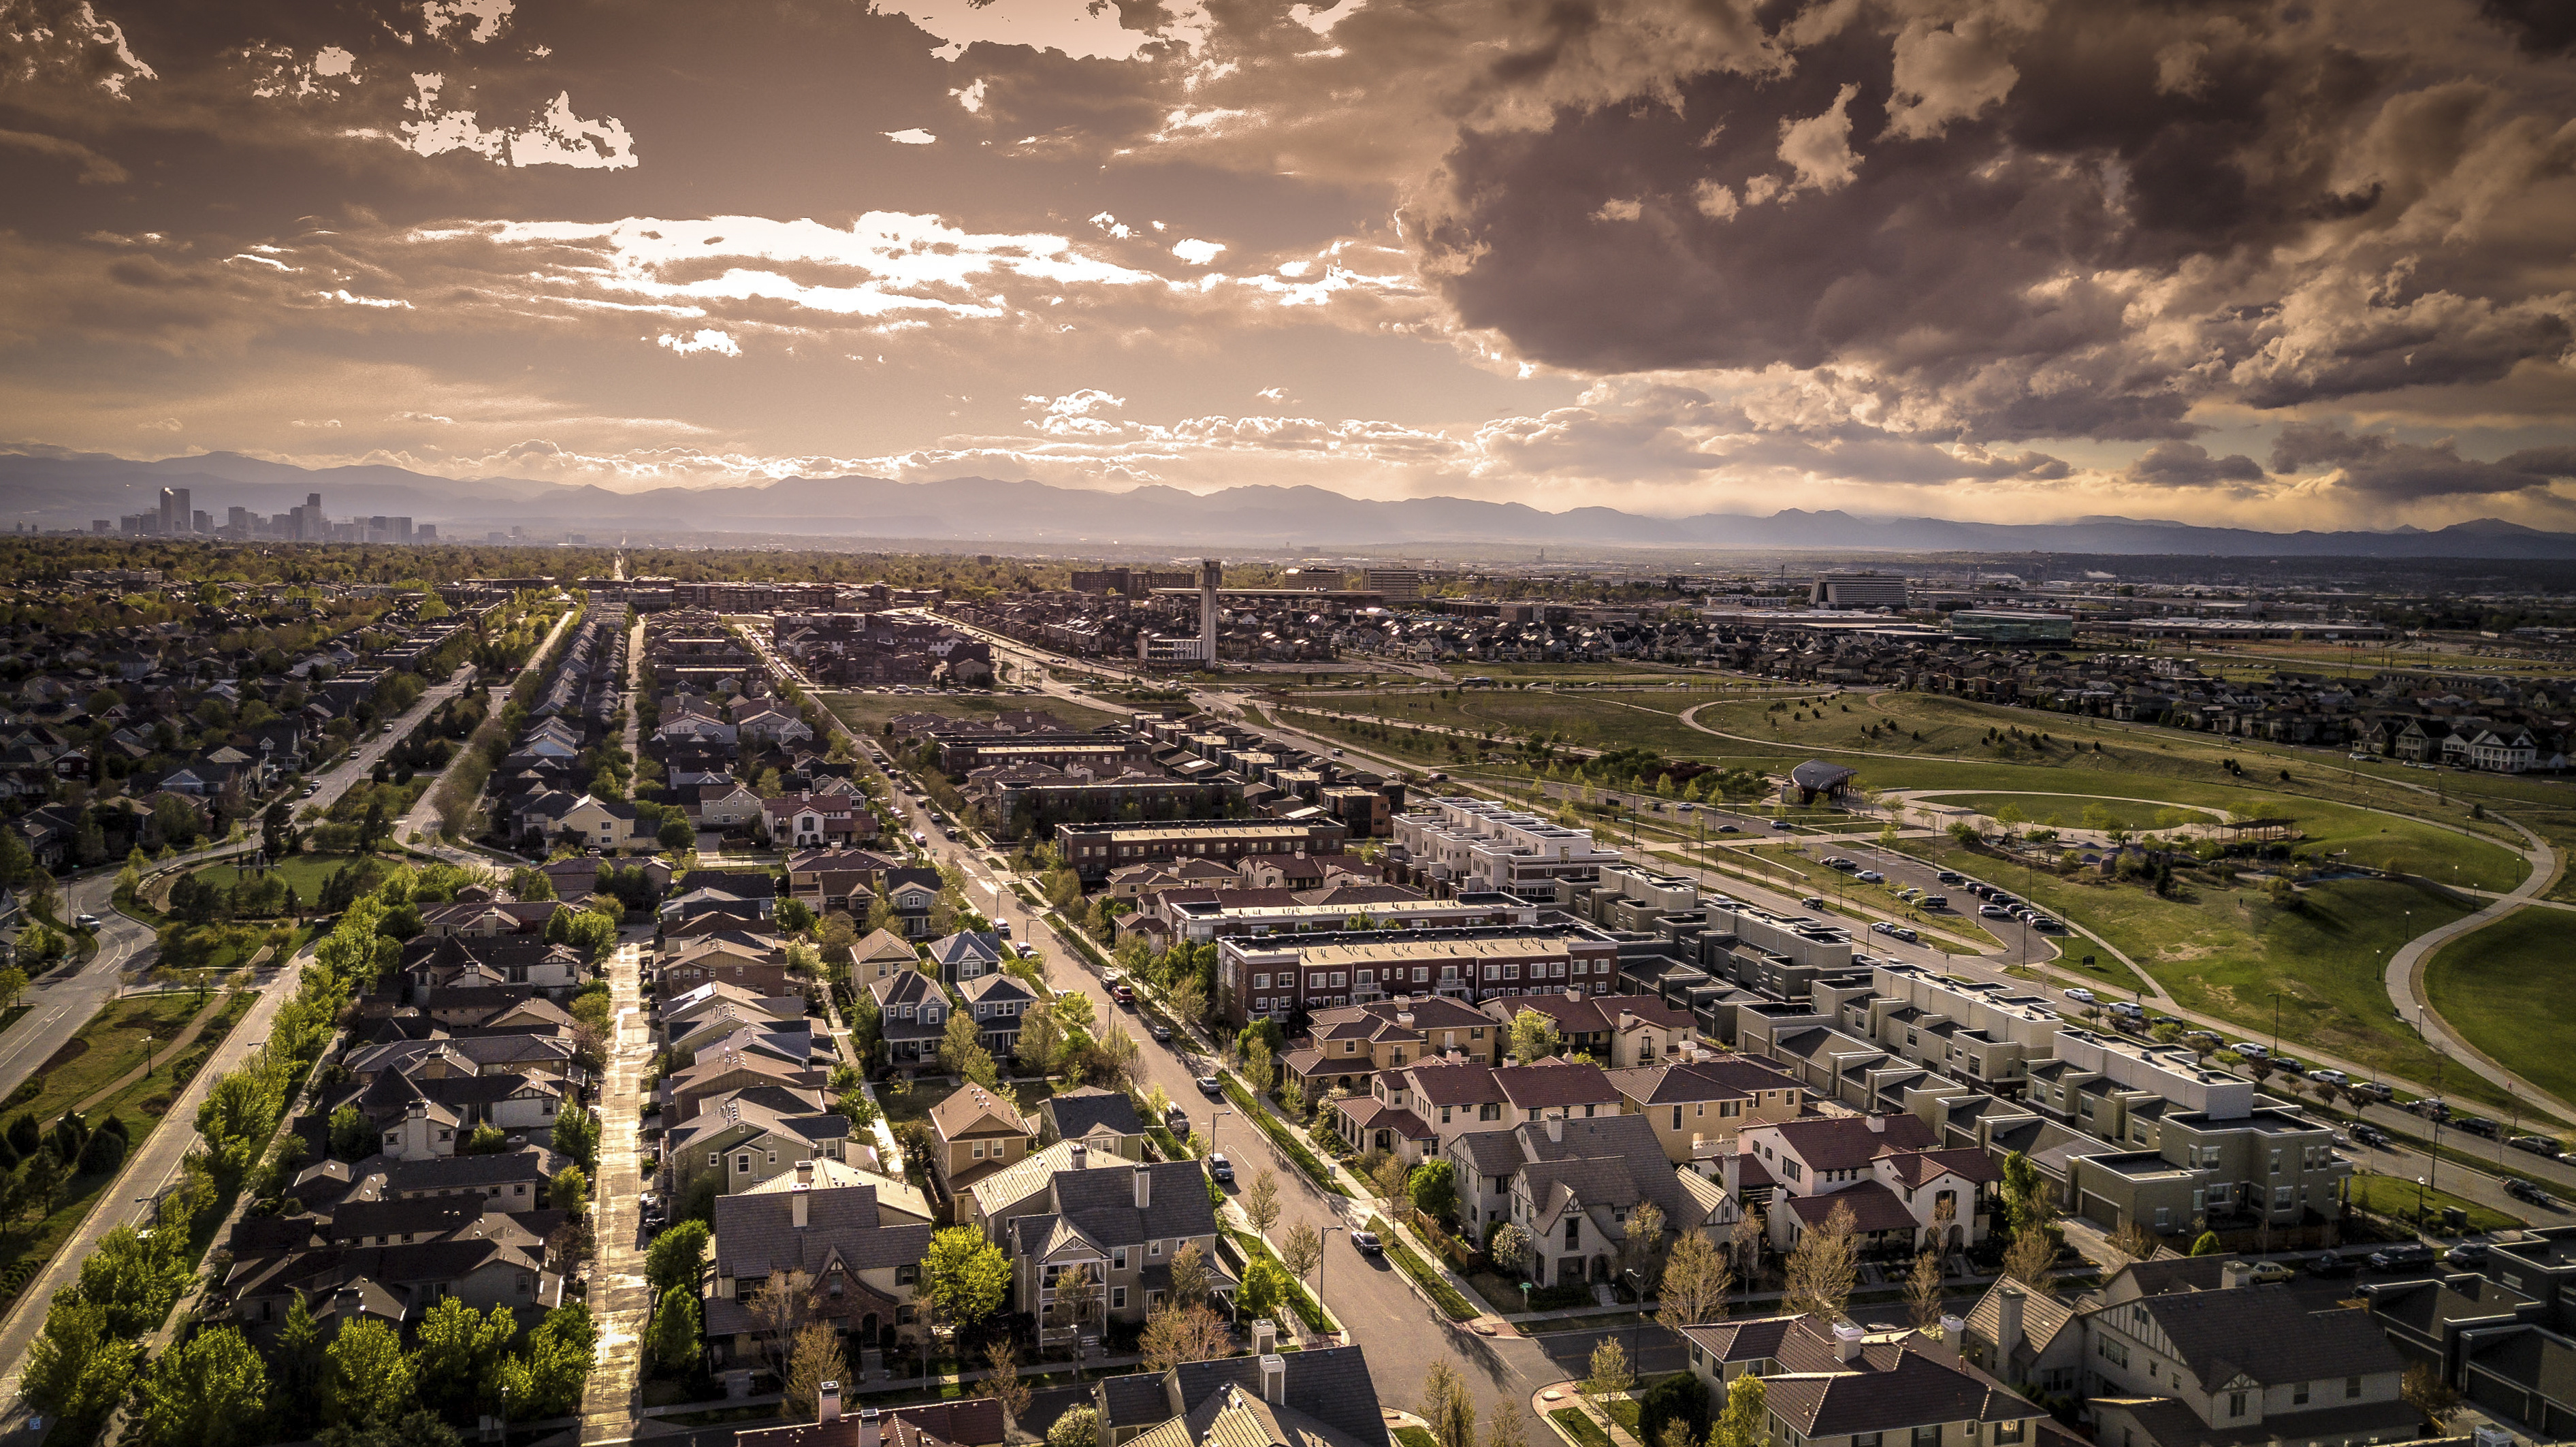 """Colorado Cities Want to Embrace """"Gentle Density"""" of Granny Flats, but They're Hitting Speed Bumps"""